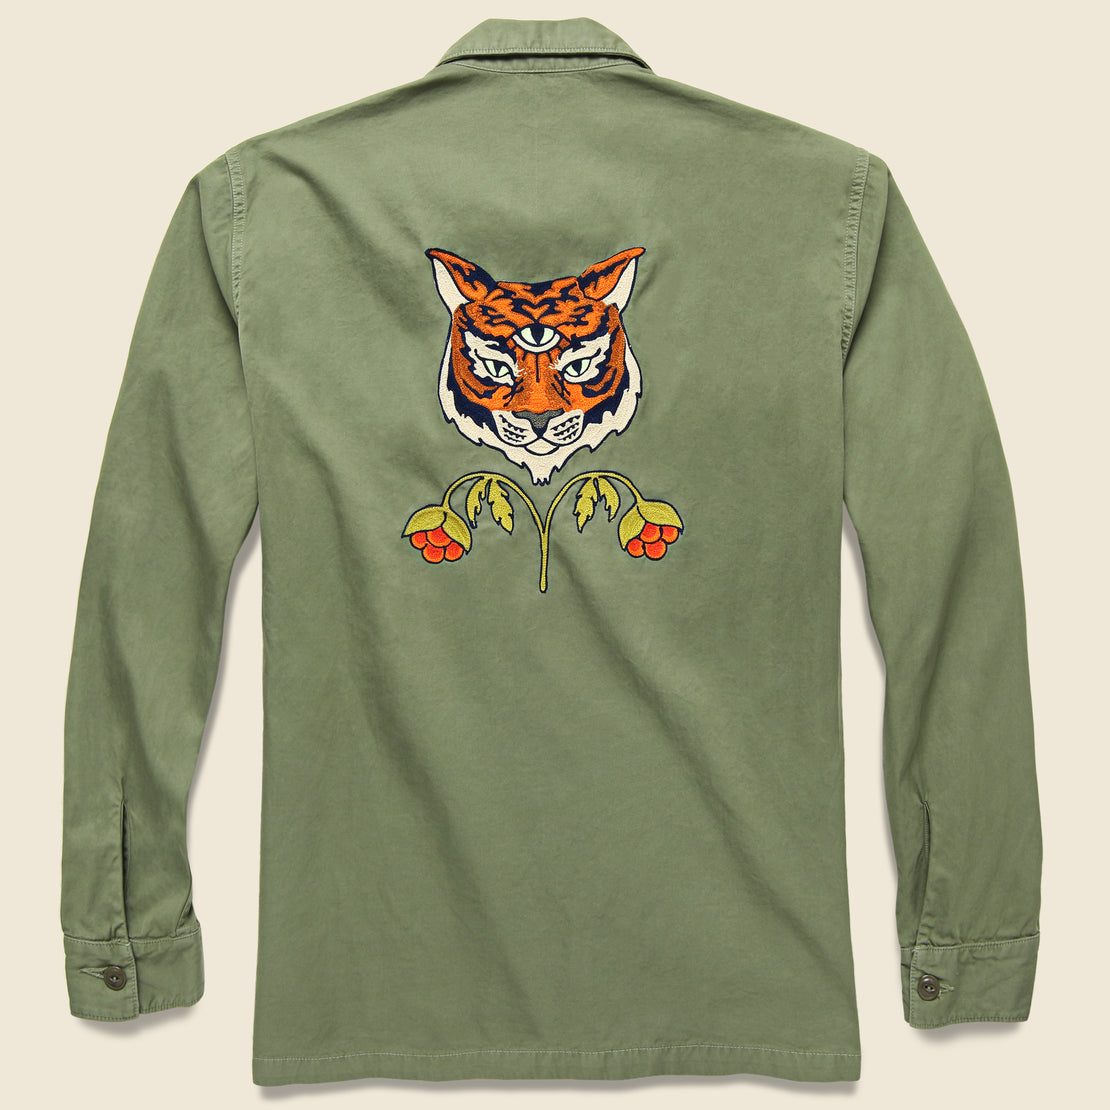 Fort Lonesome Twill Fatigue Overshirt - Tiger